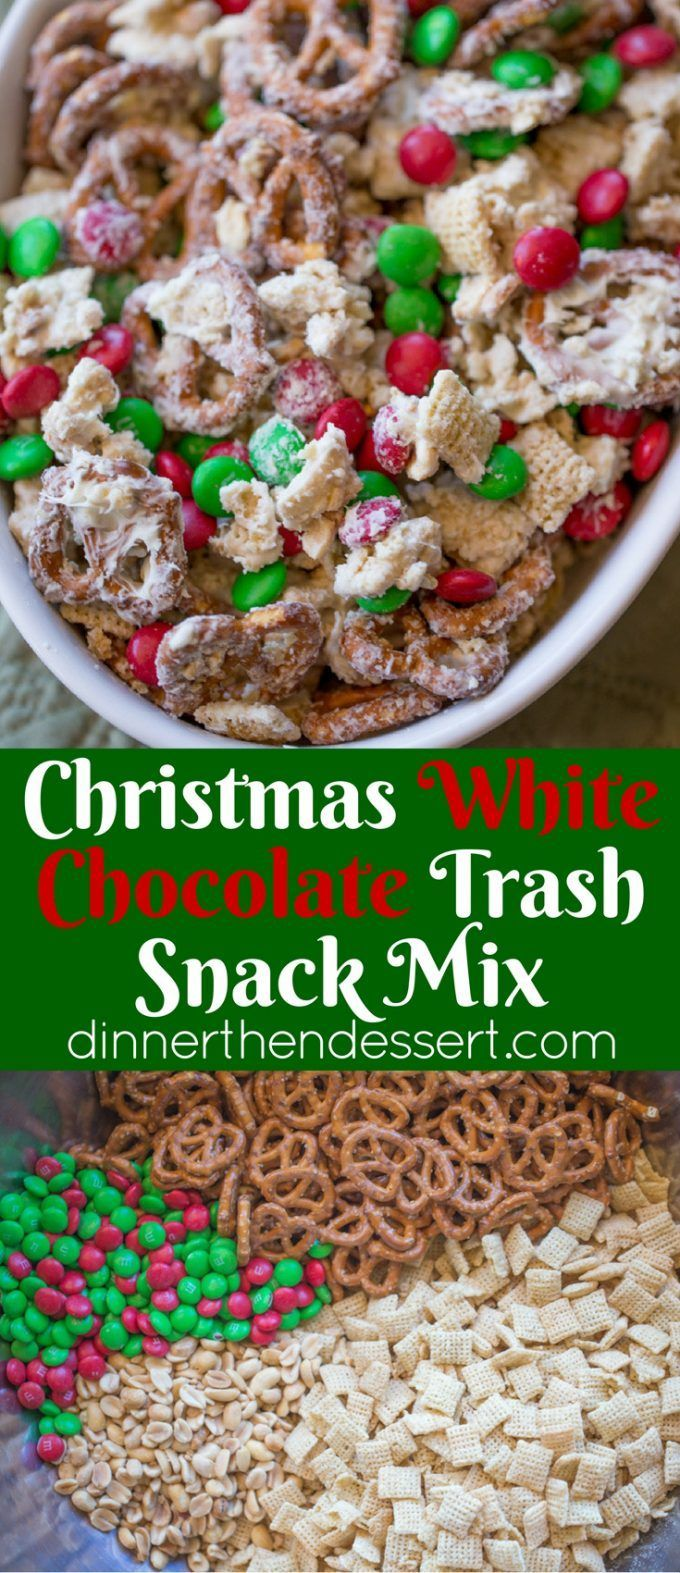 17 best Christmas snacks images on Pinterest | Christmas candy ...